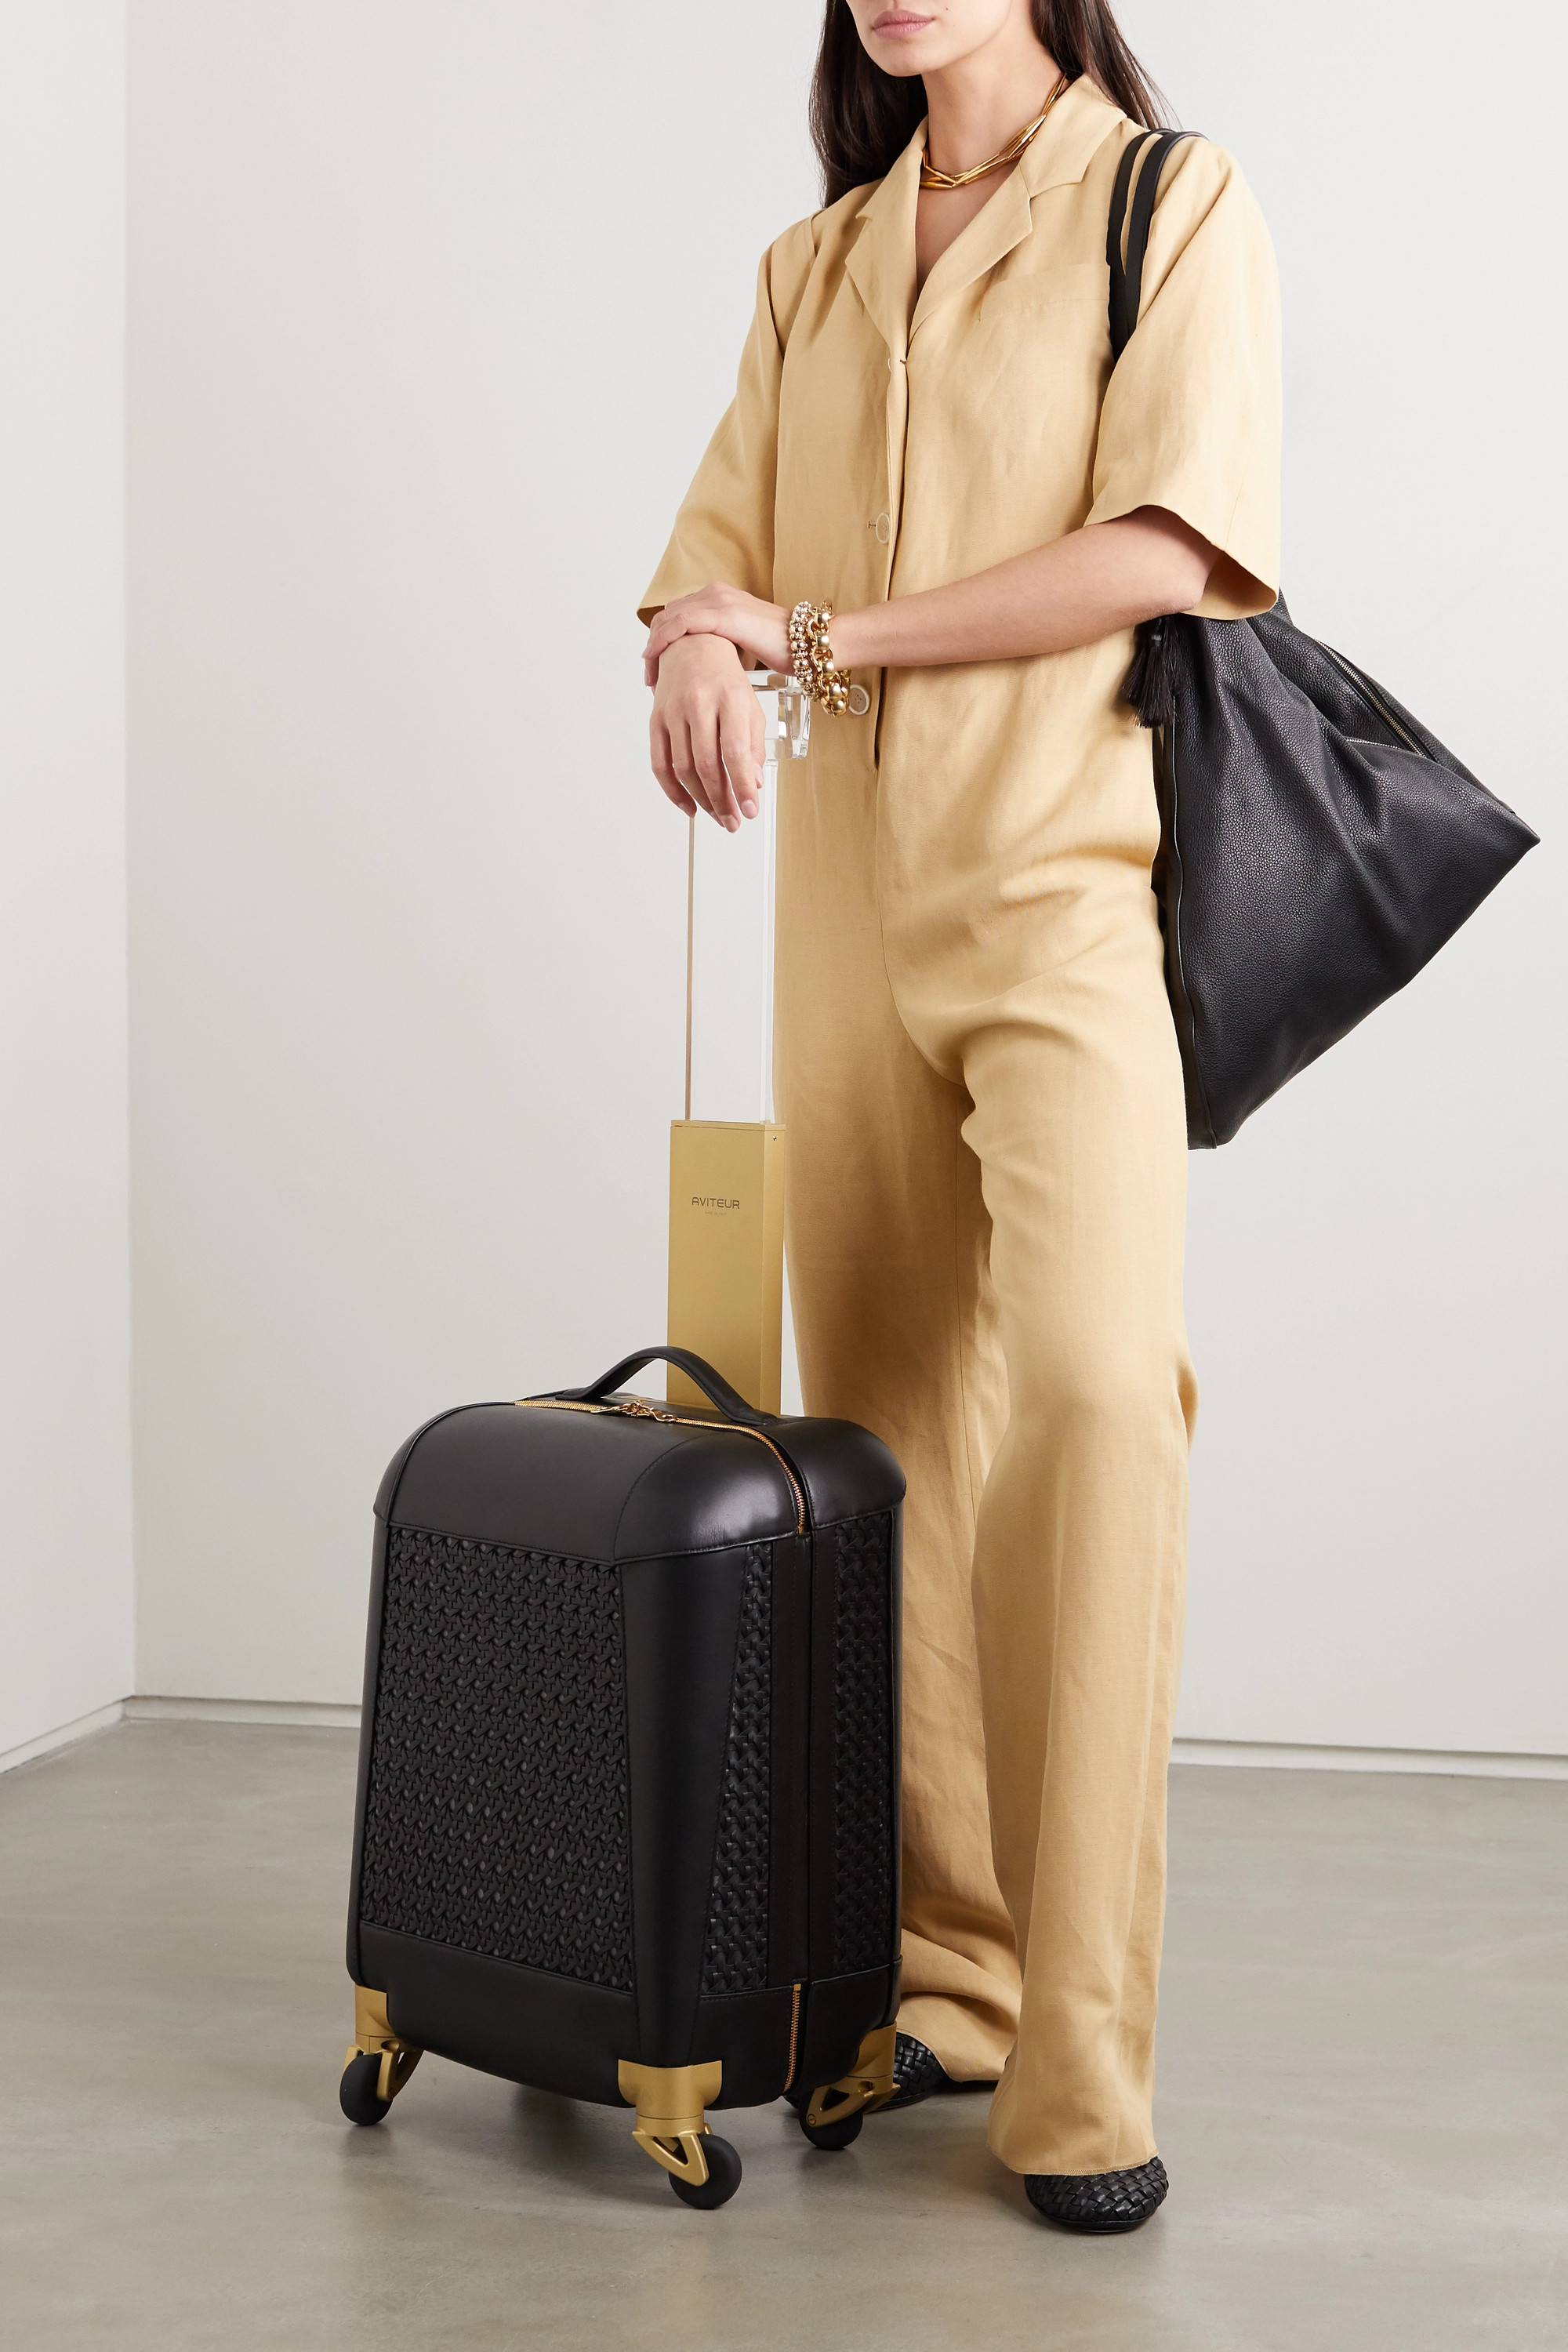 Aviteur Paneled woven leather carry-on suitcase